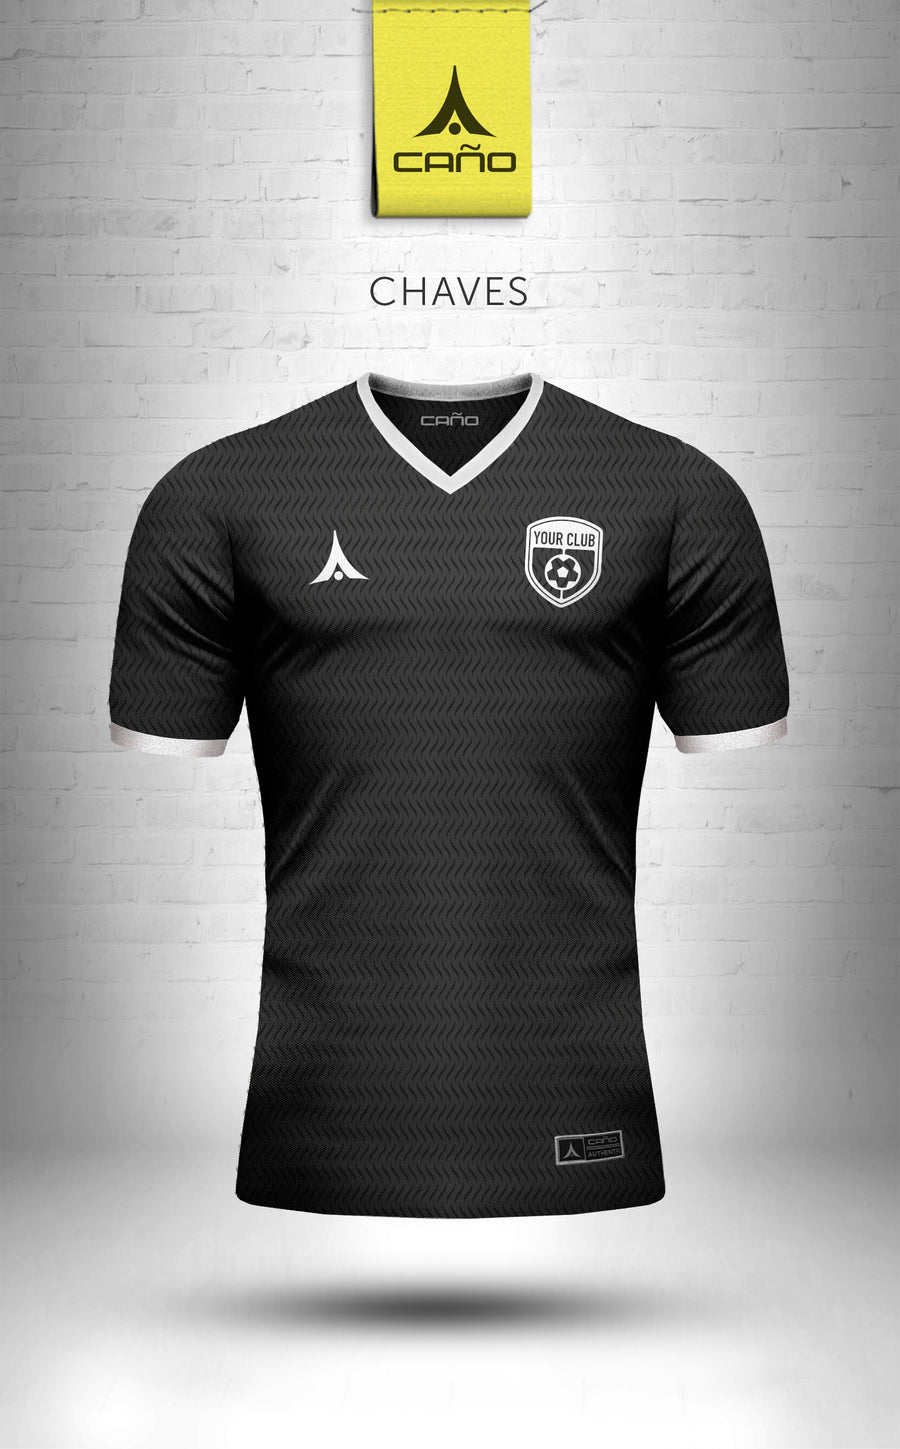 Chaves in black/white